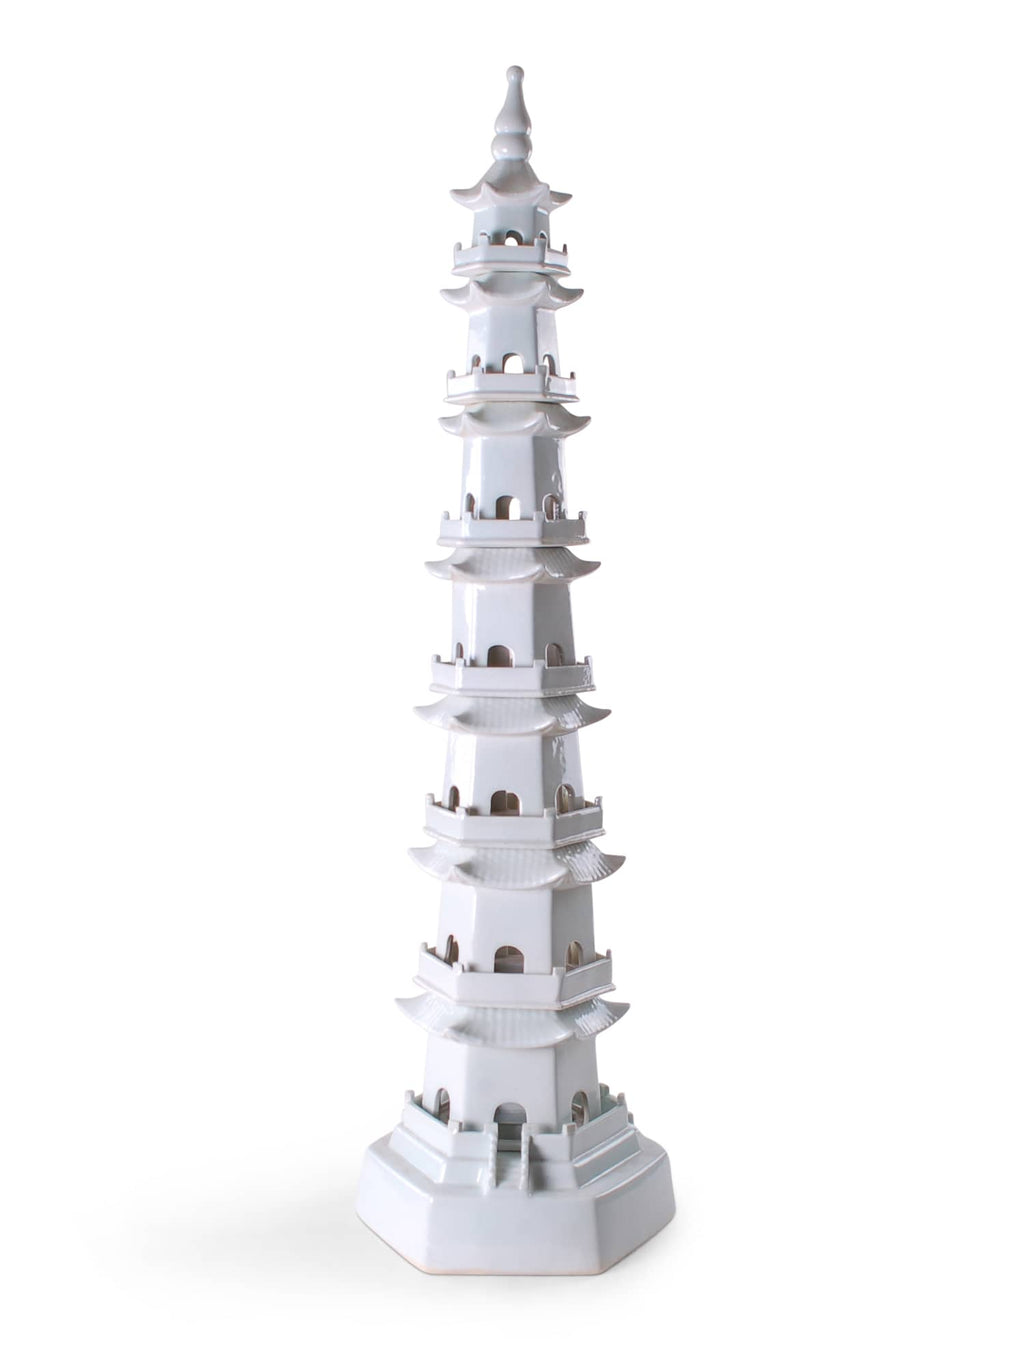 Celadon Pagoda Tower